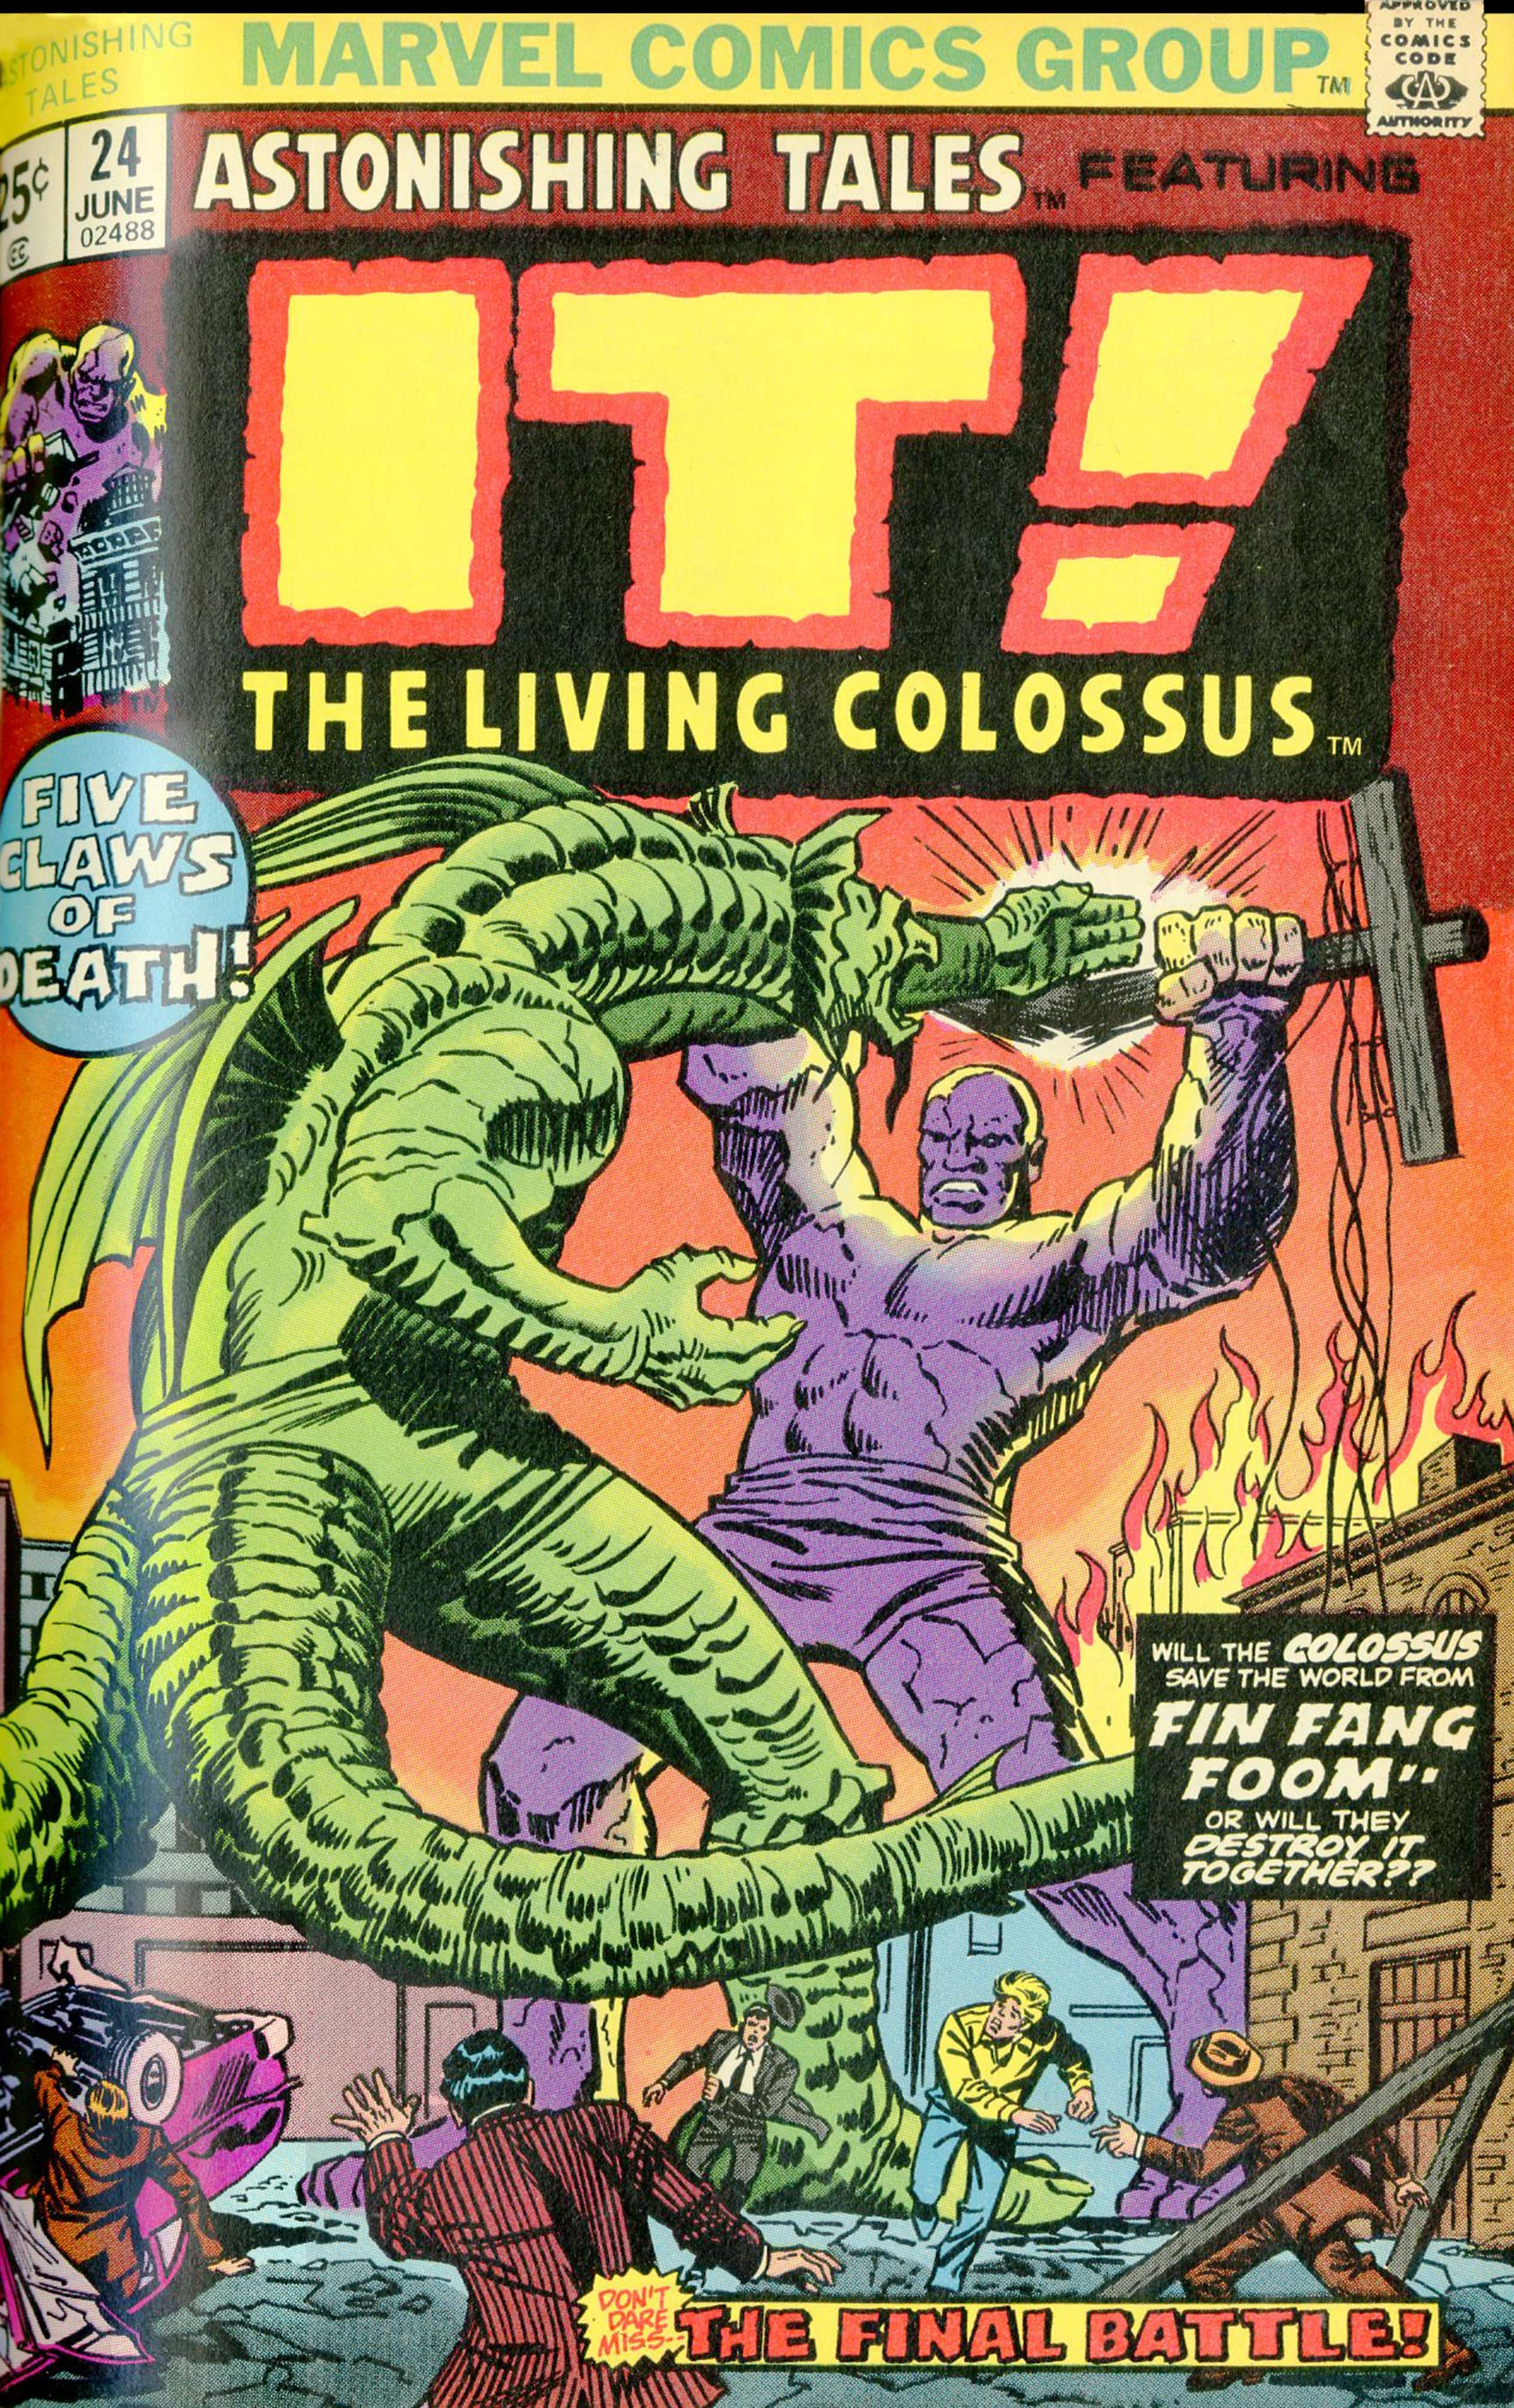 Astonishing Tales (1970) #24